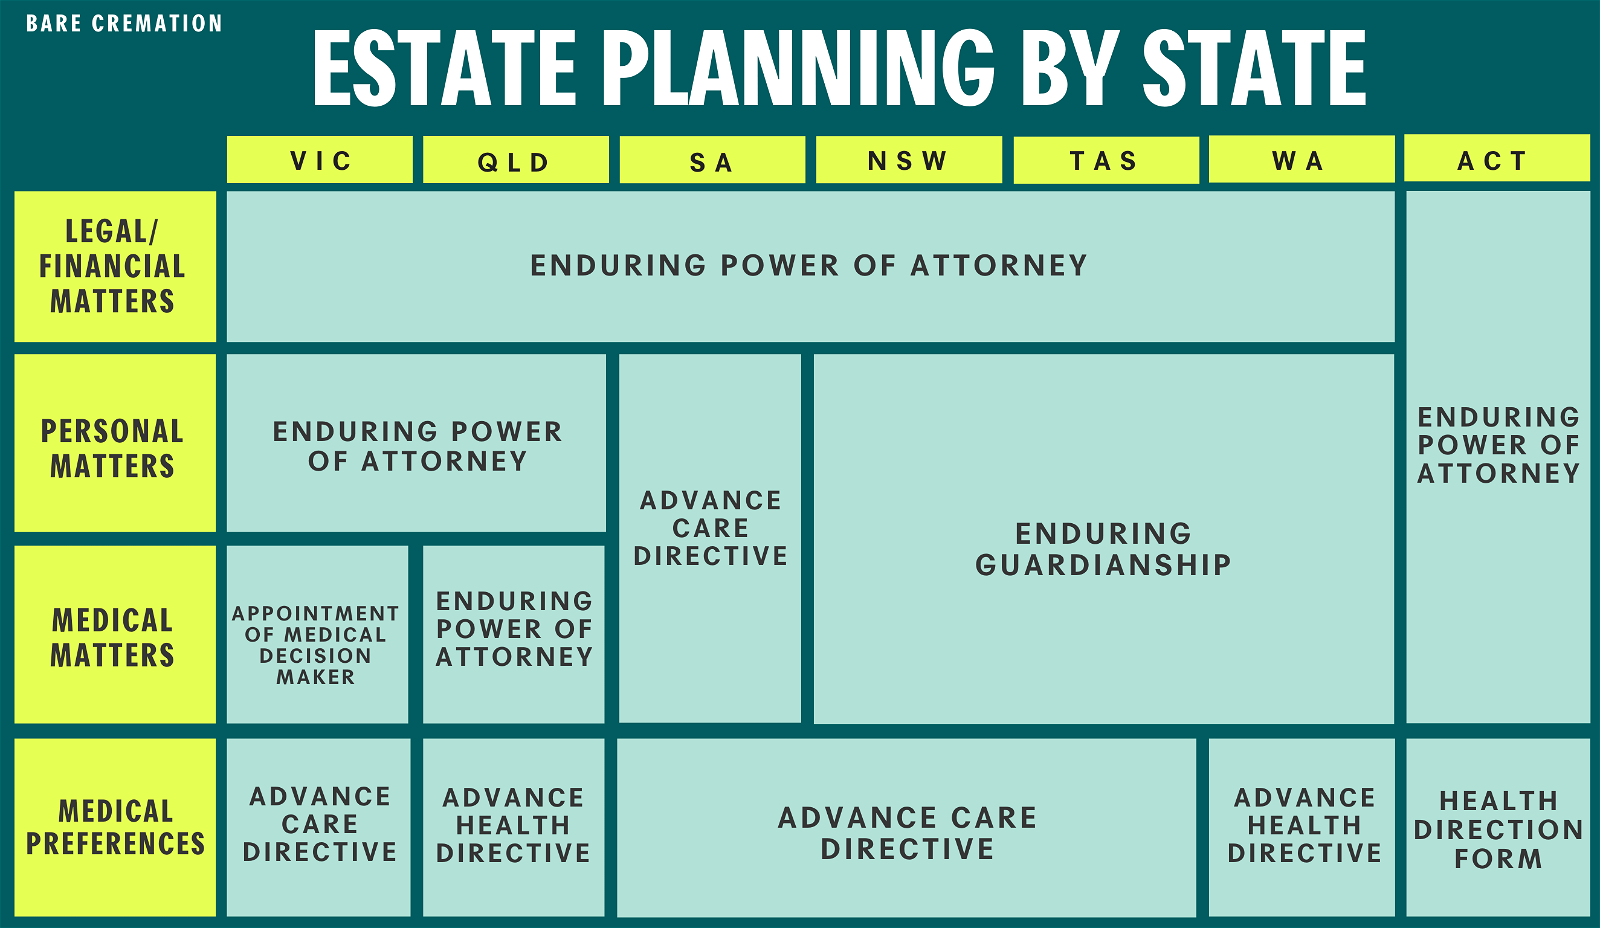 Here's which estate planning document is required for each state.